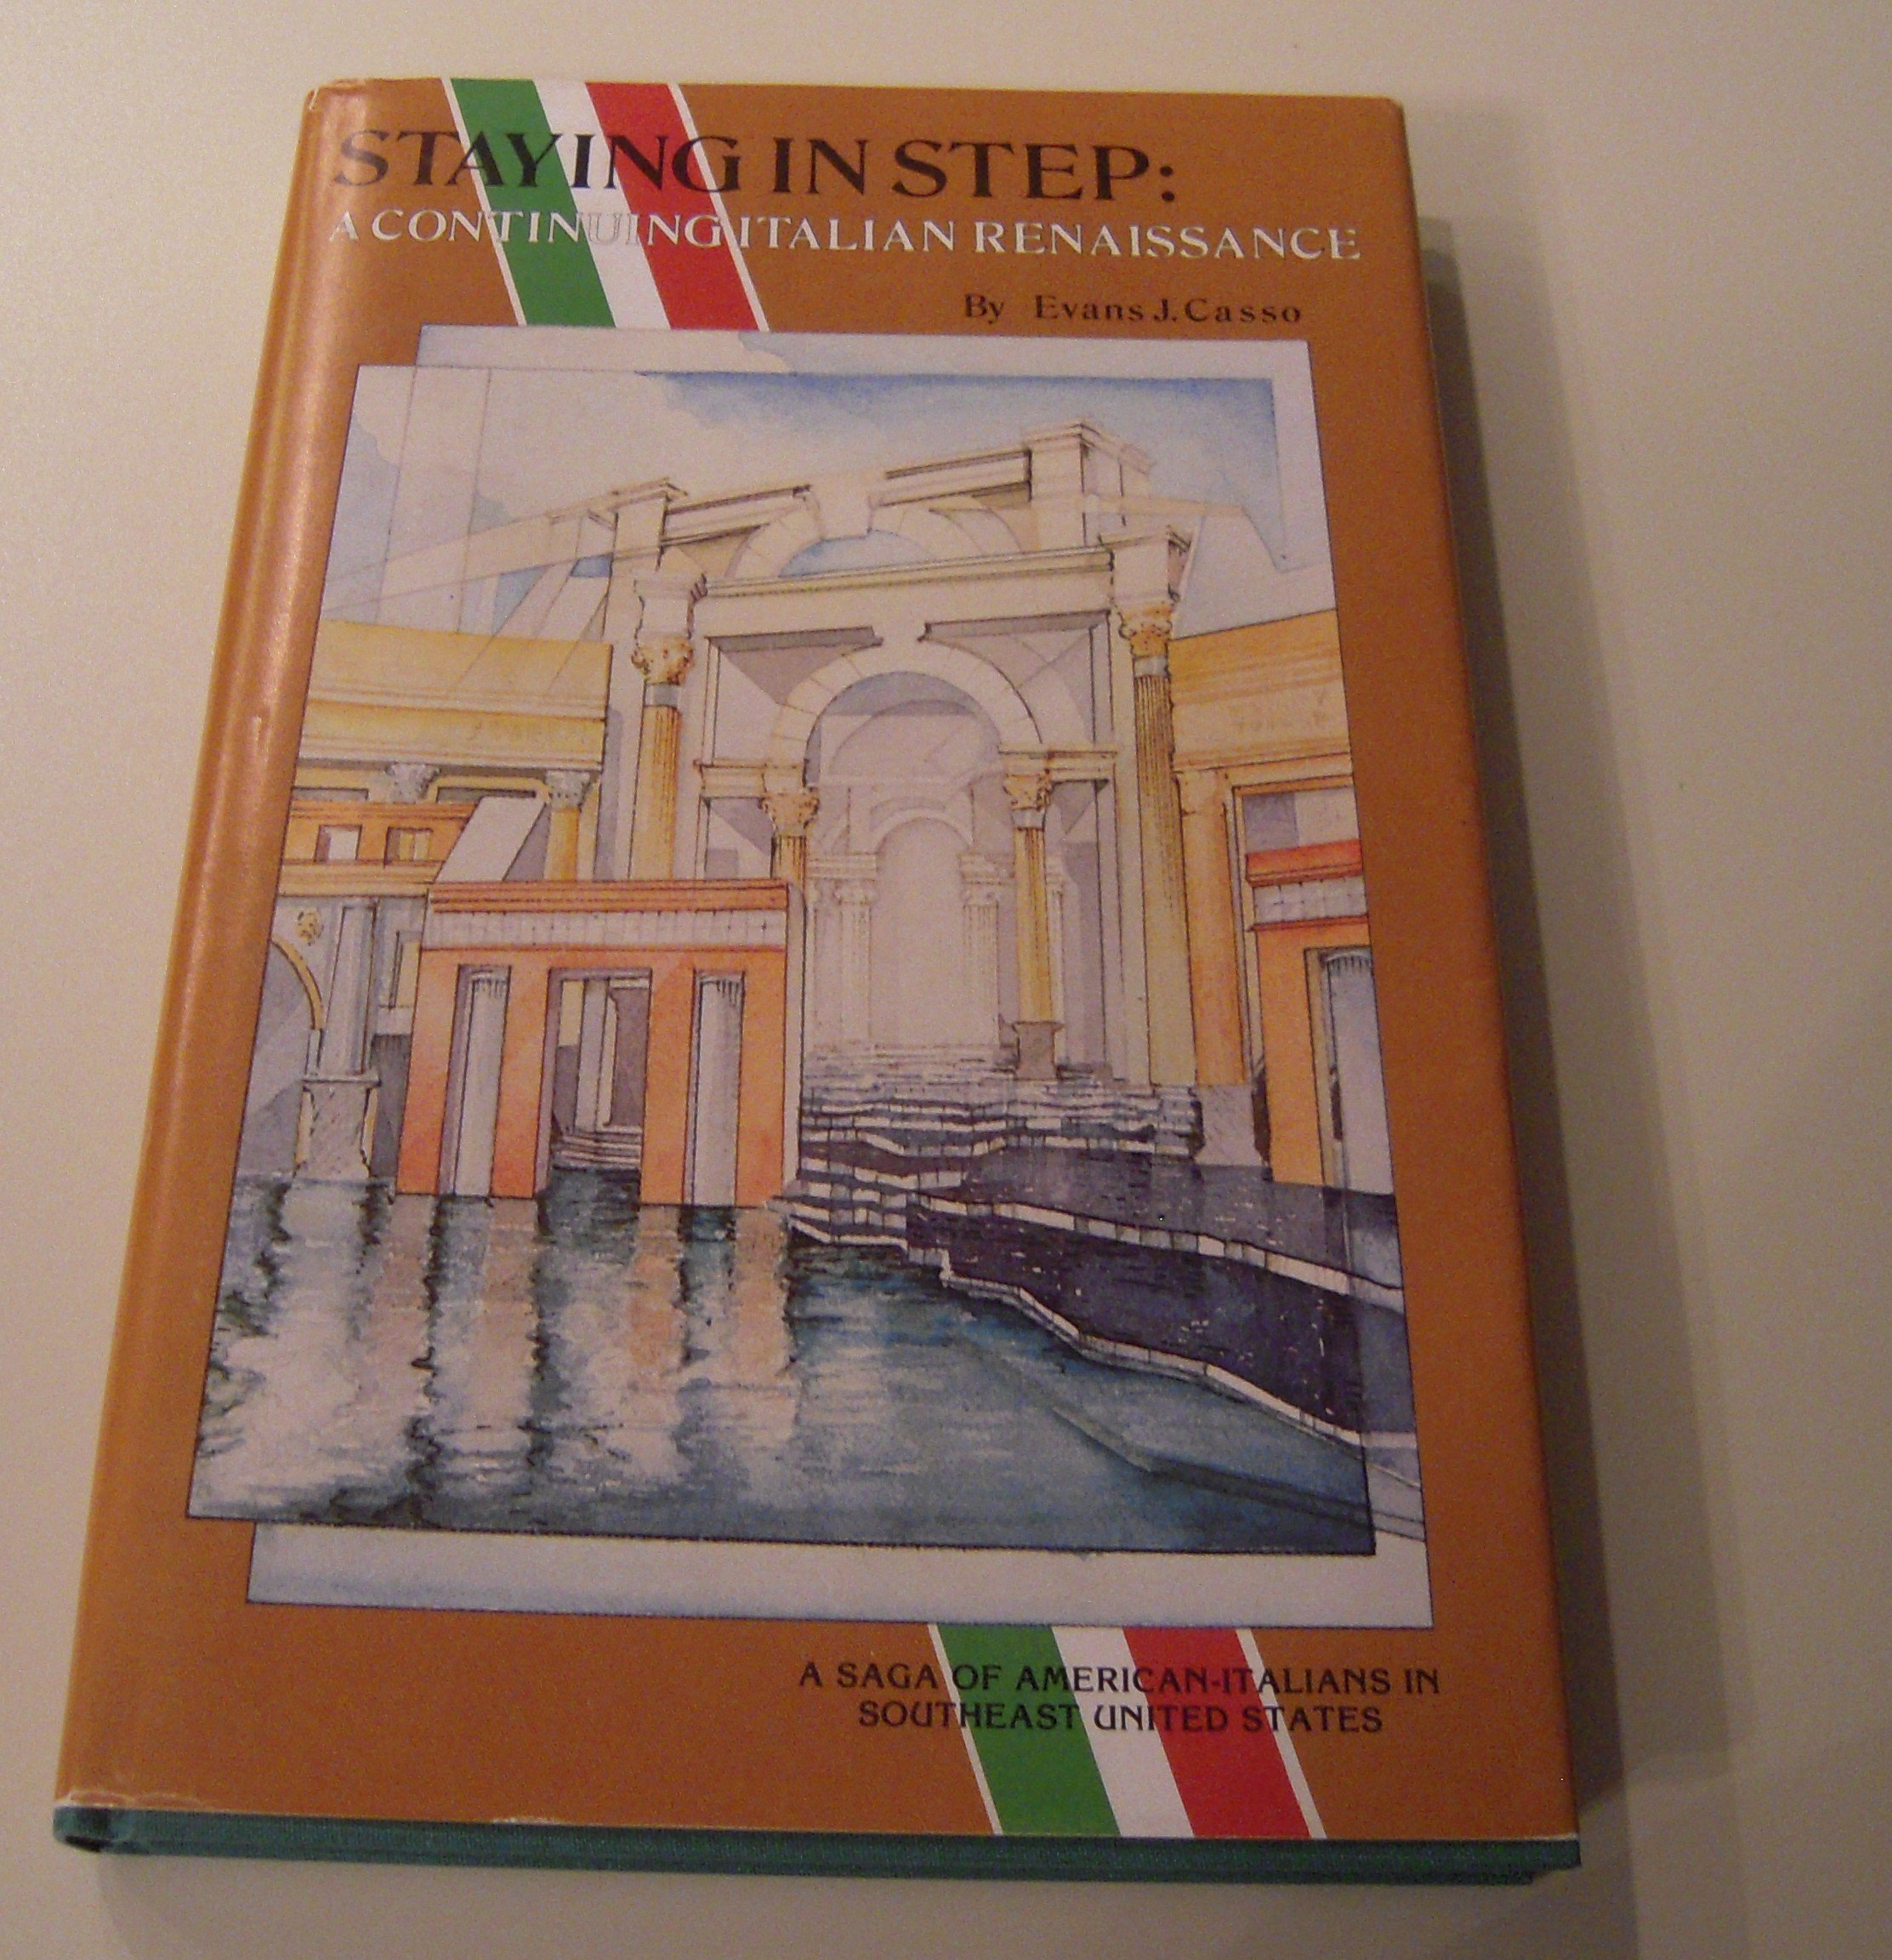 Staying in Step: A Continuing Italian Renaissance.: EVANS J. CASSO: Amazon.com: Books